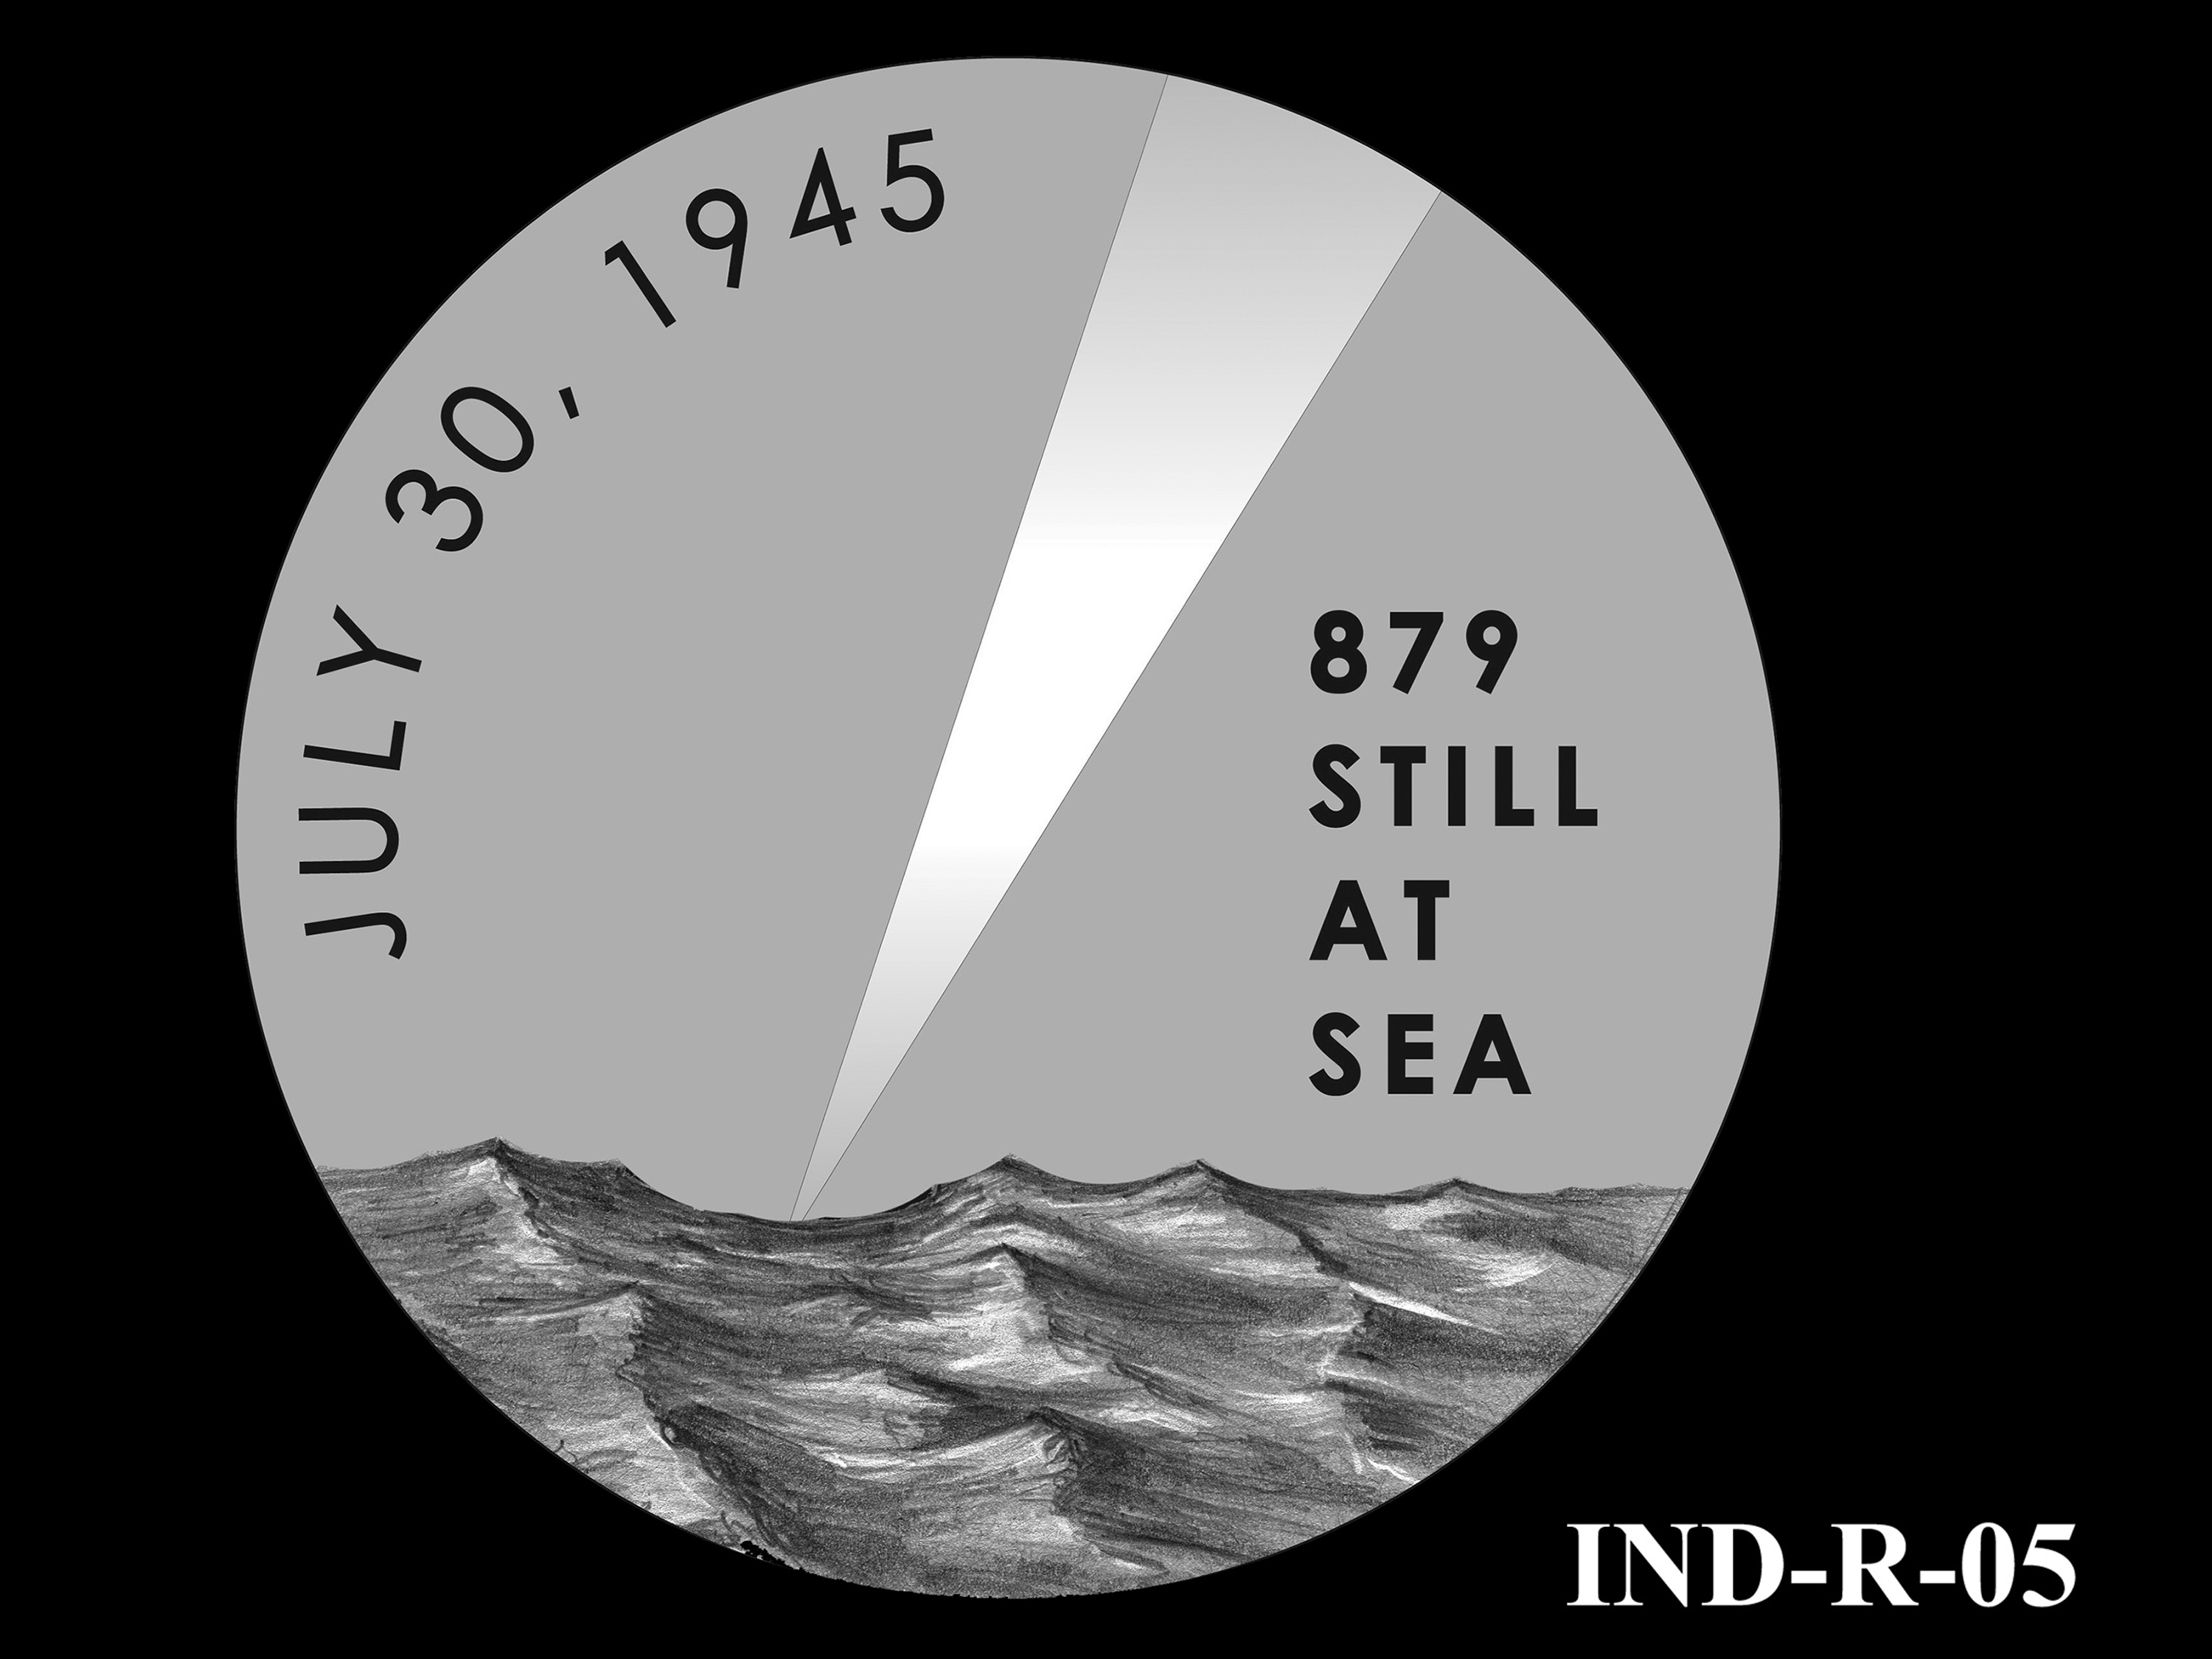 IND-R-05 - USS Indianapolis Congressional Gold Medal - Reverse